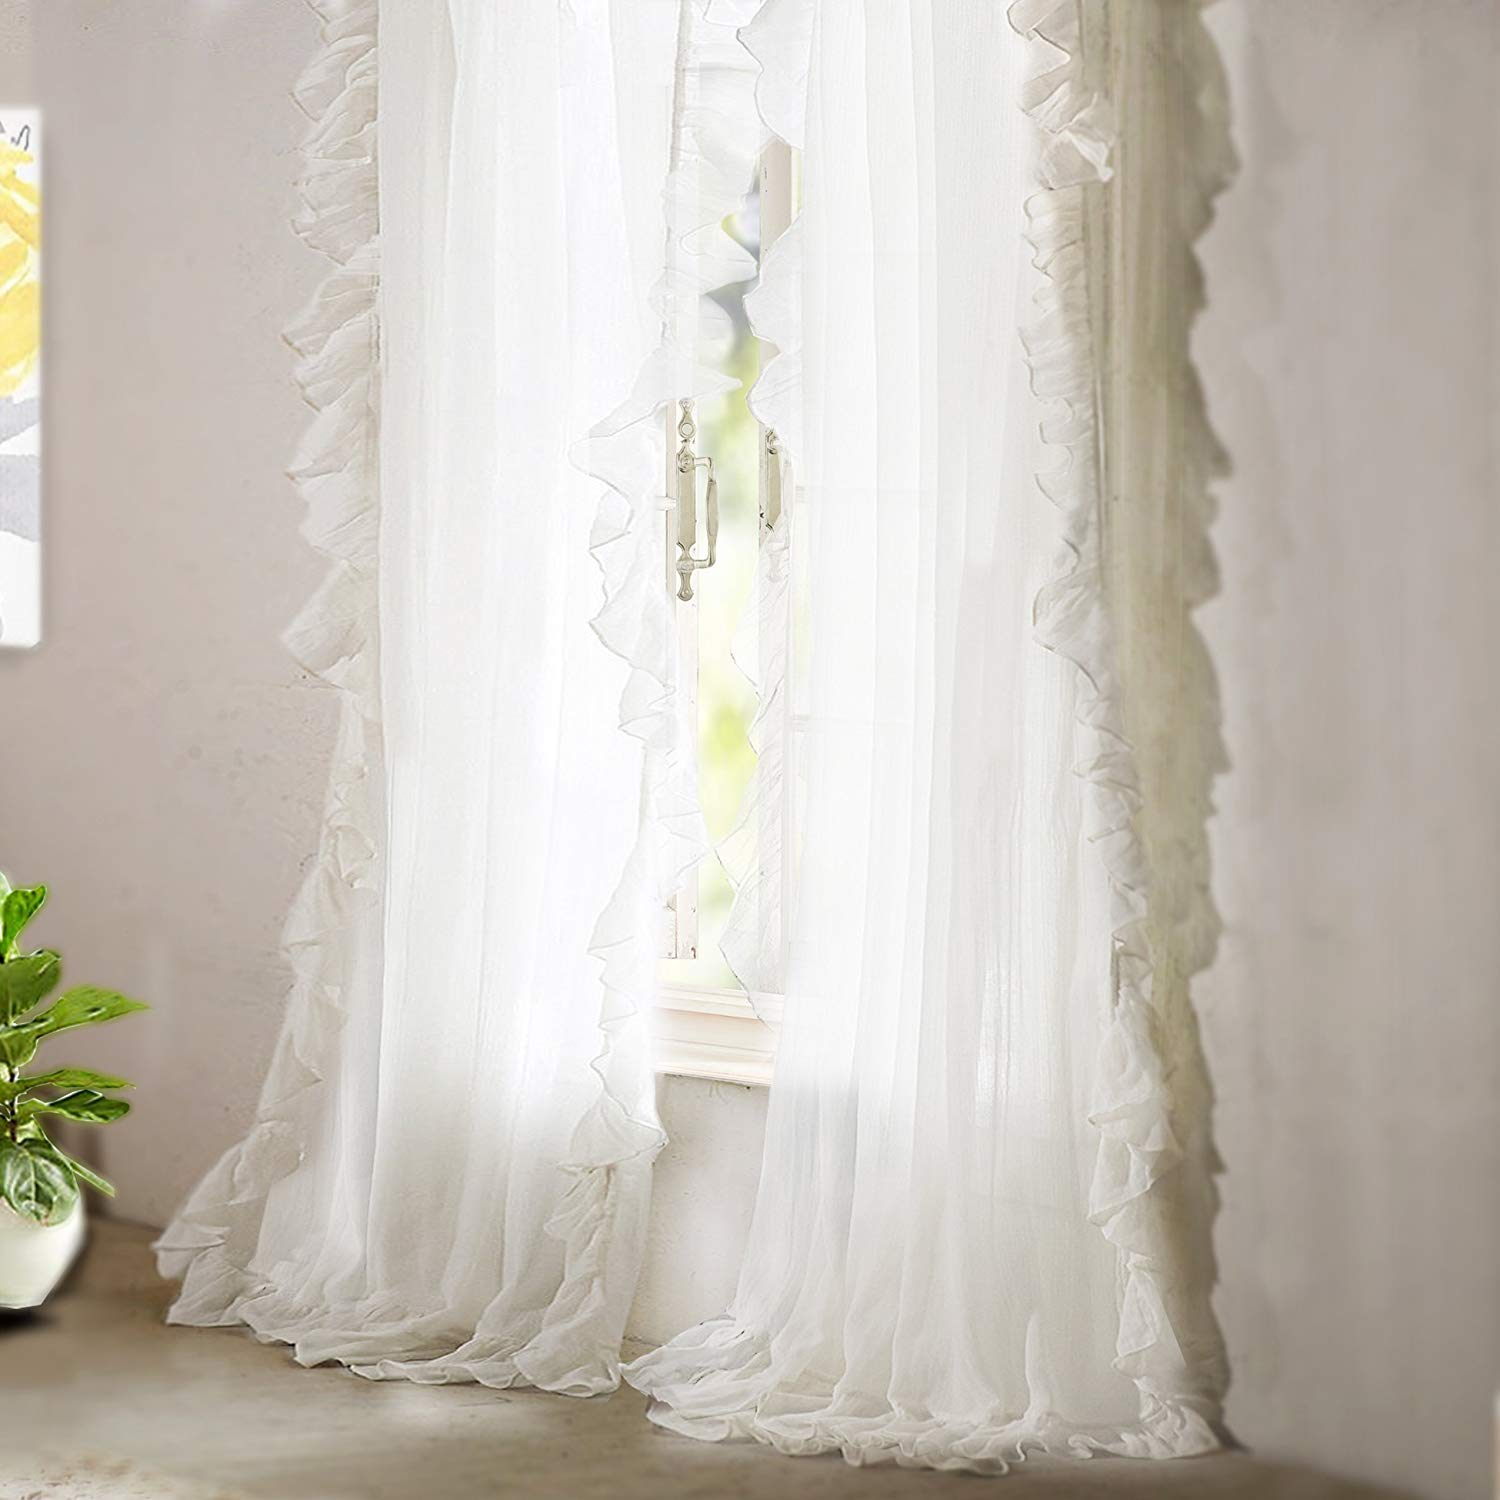 KALENDS Sheer Curtain Set for Living Room Bedroom Rod Pocket Tulle Fabric Ruffle White Window Treatment - 52 W x 108 L - (2 Panels)